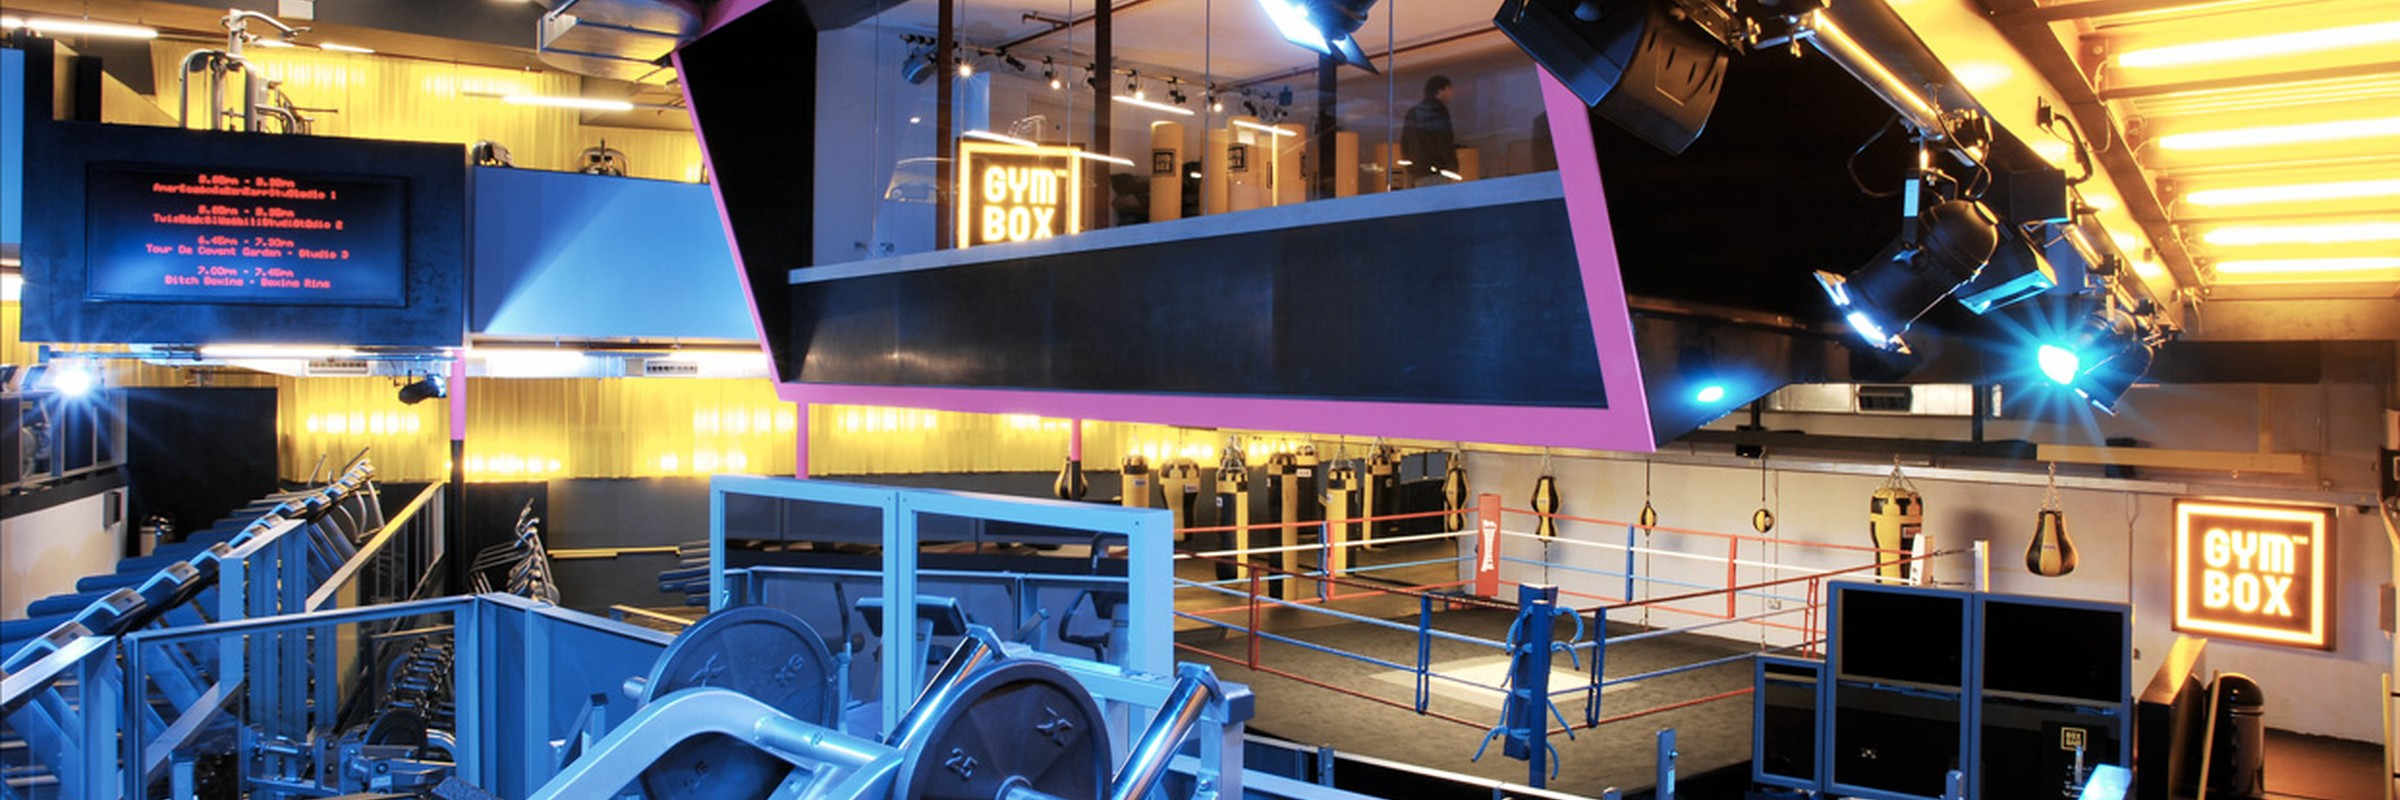 Gymbox, Covent Garden